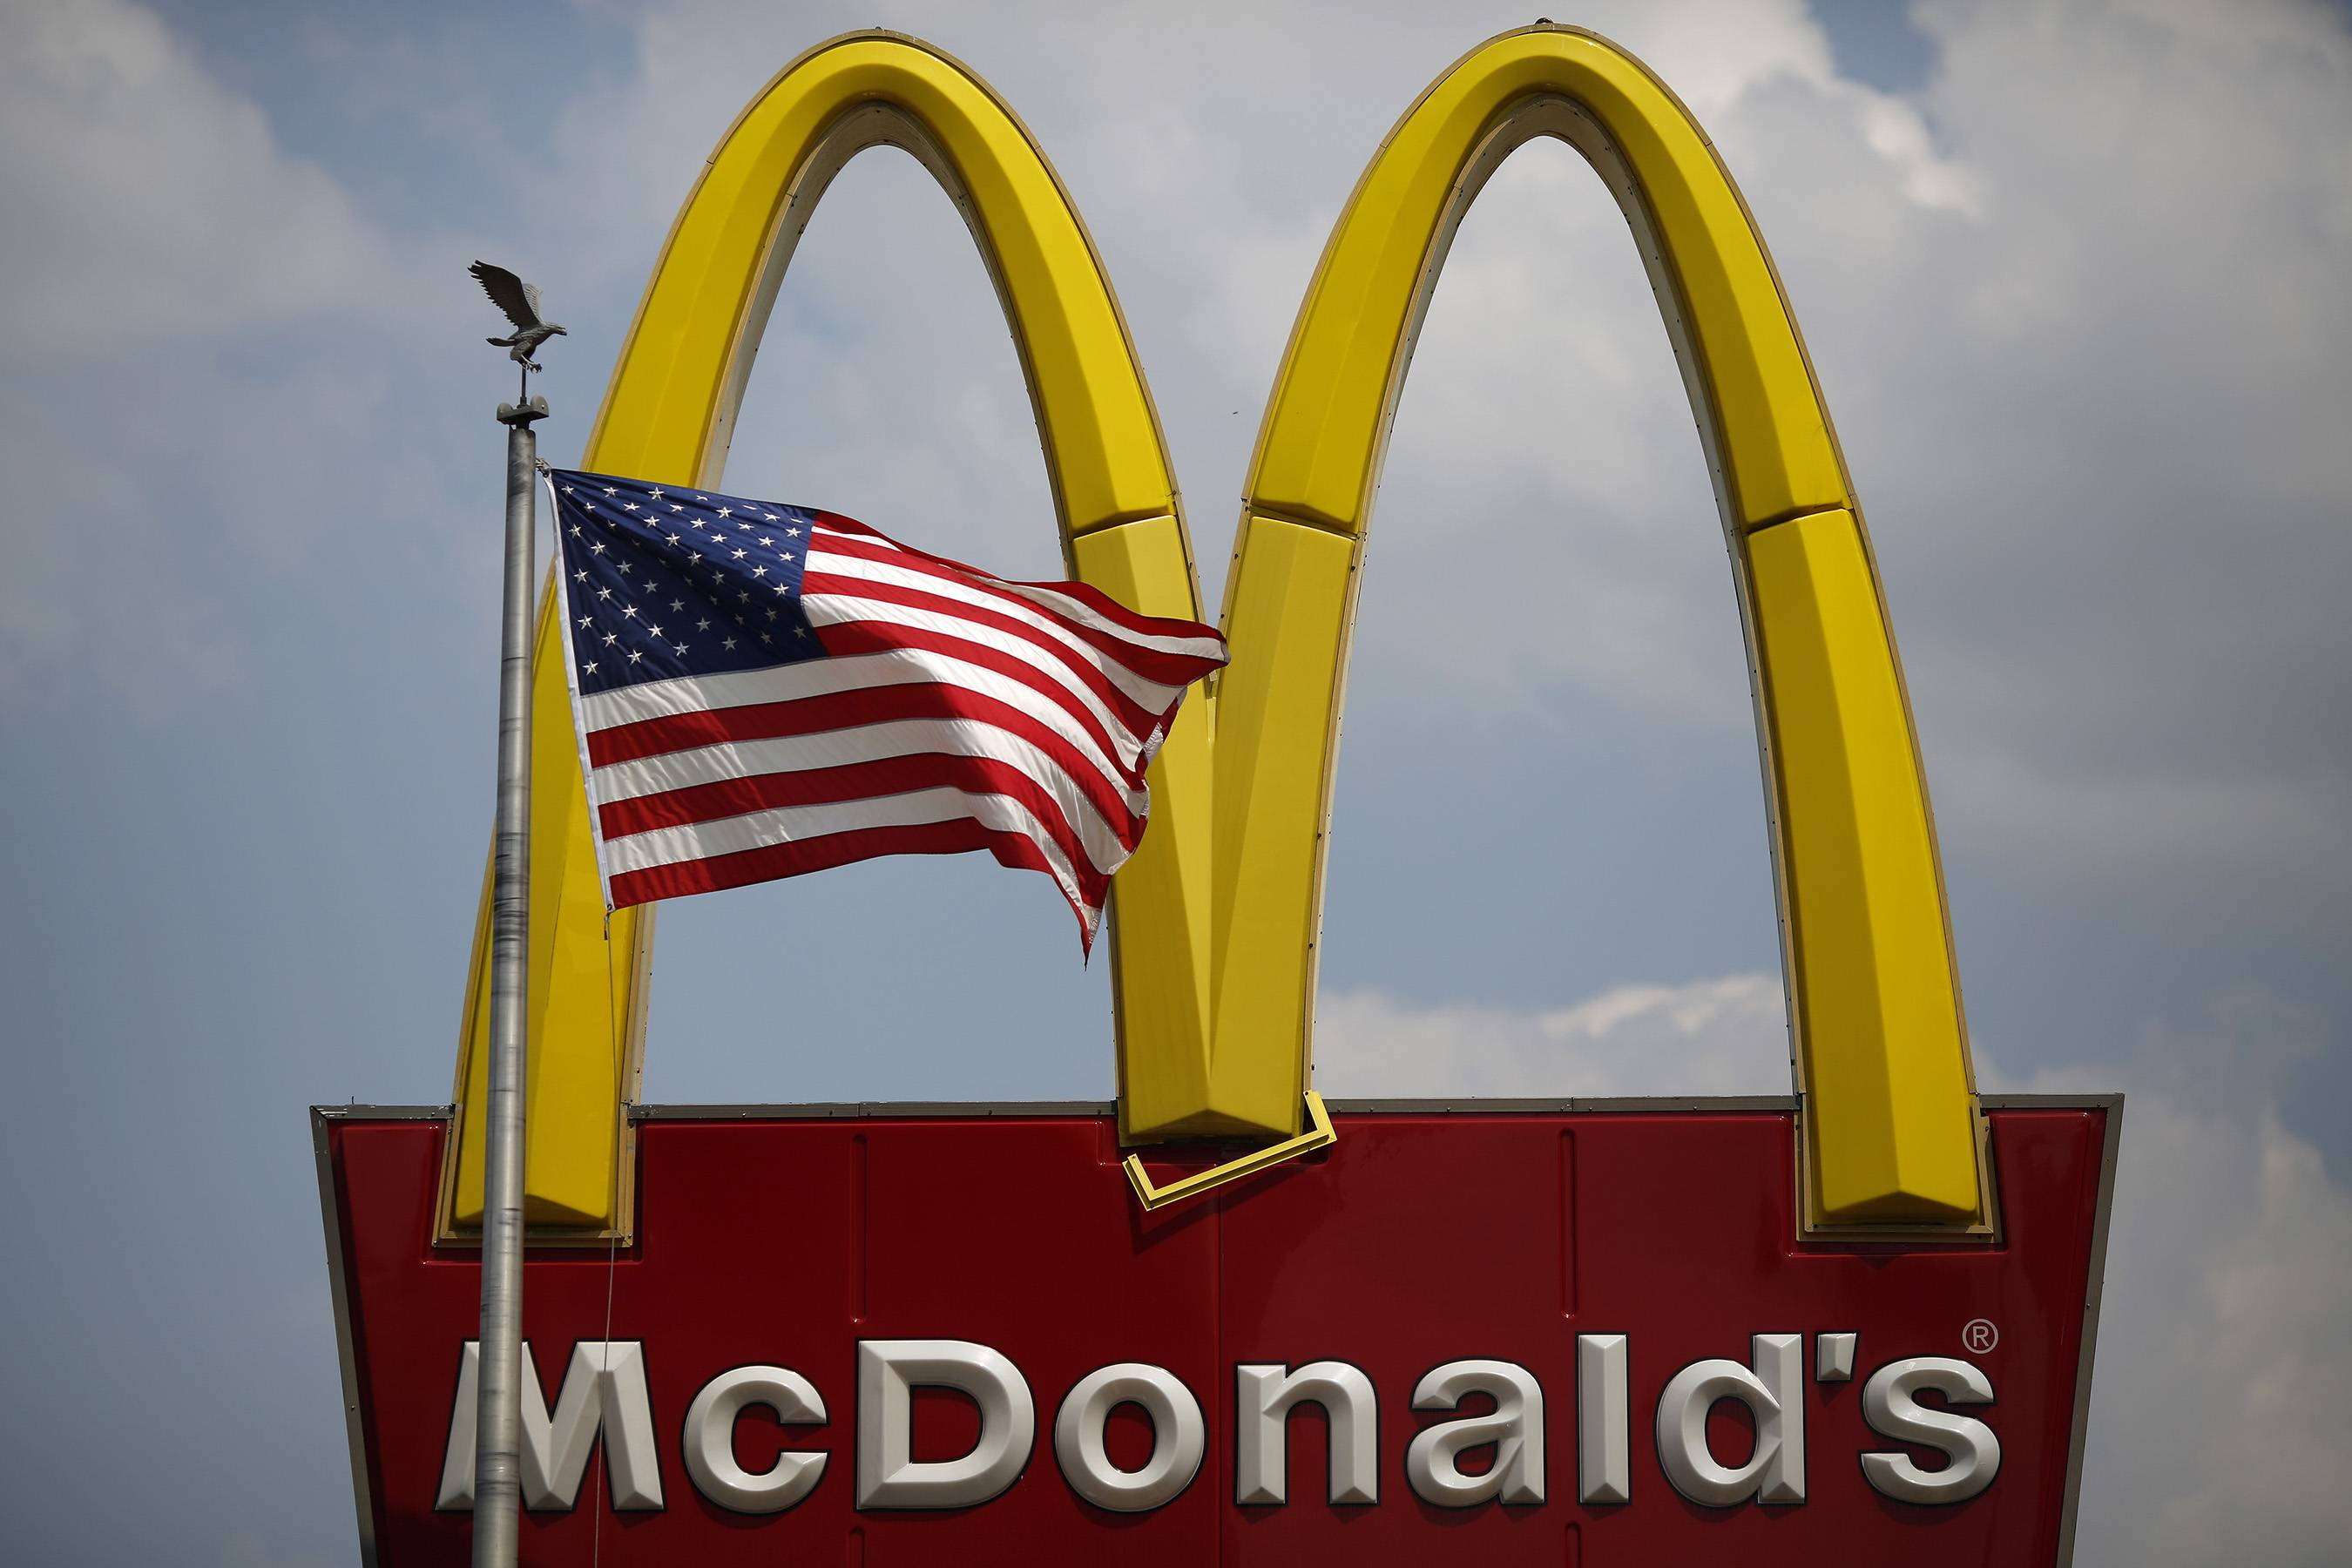 BLOOMBERG FILE PHOTO McDonald's announced Thursday that it will lay off more than 100 people who work at the Oak Brook headquarters or an office in Warrenville.